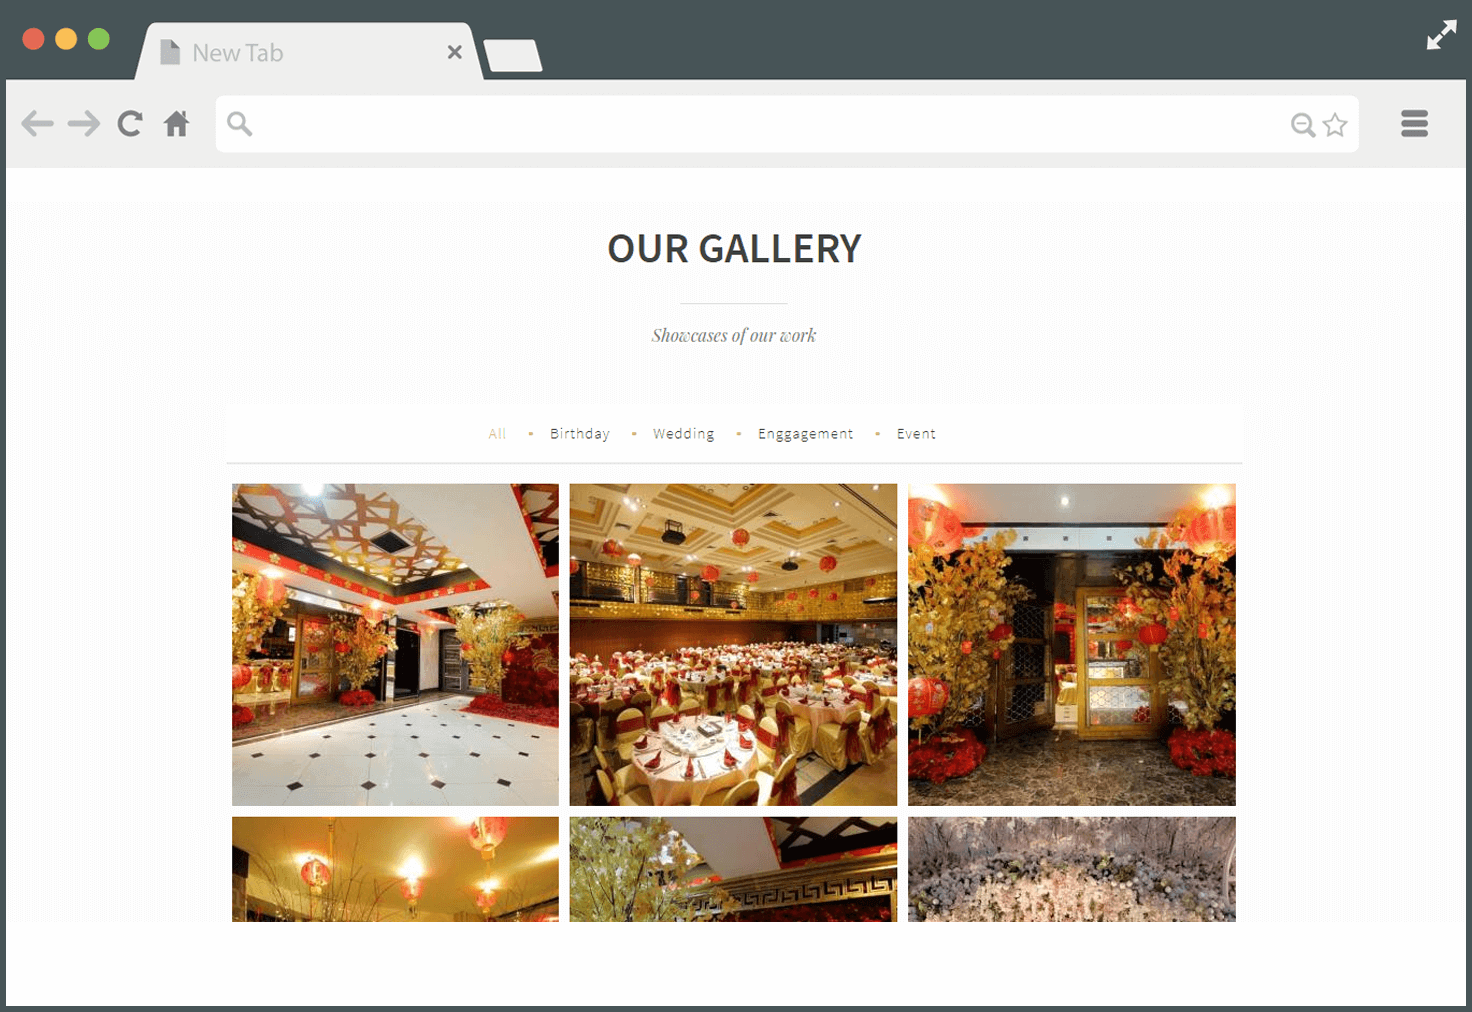 Our Gallery - Company Profile Website